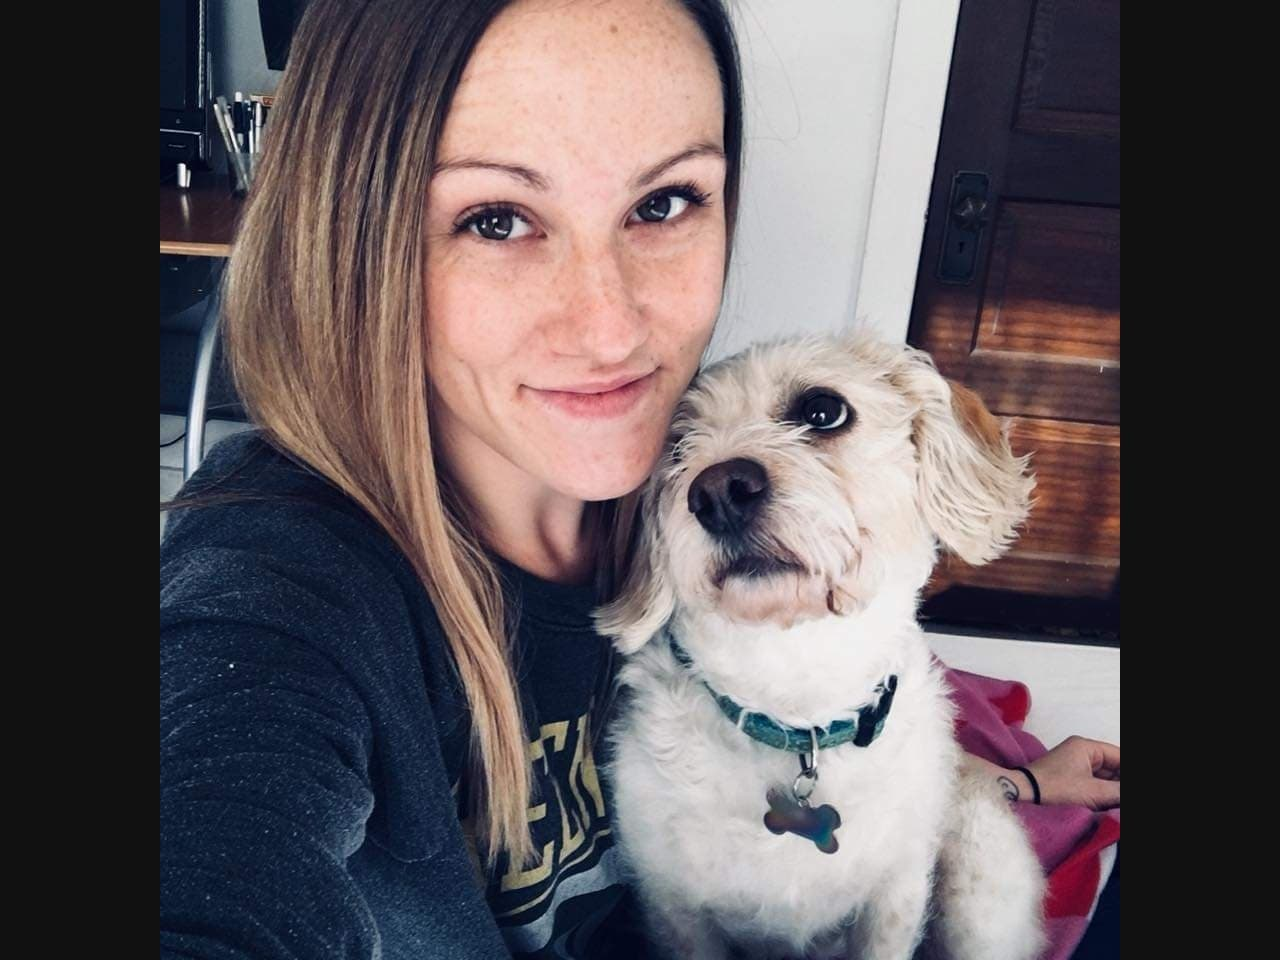 Fundraiser Set For Woman Set On Fire In Waukesha